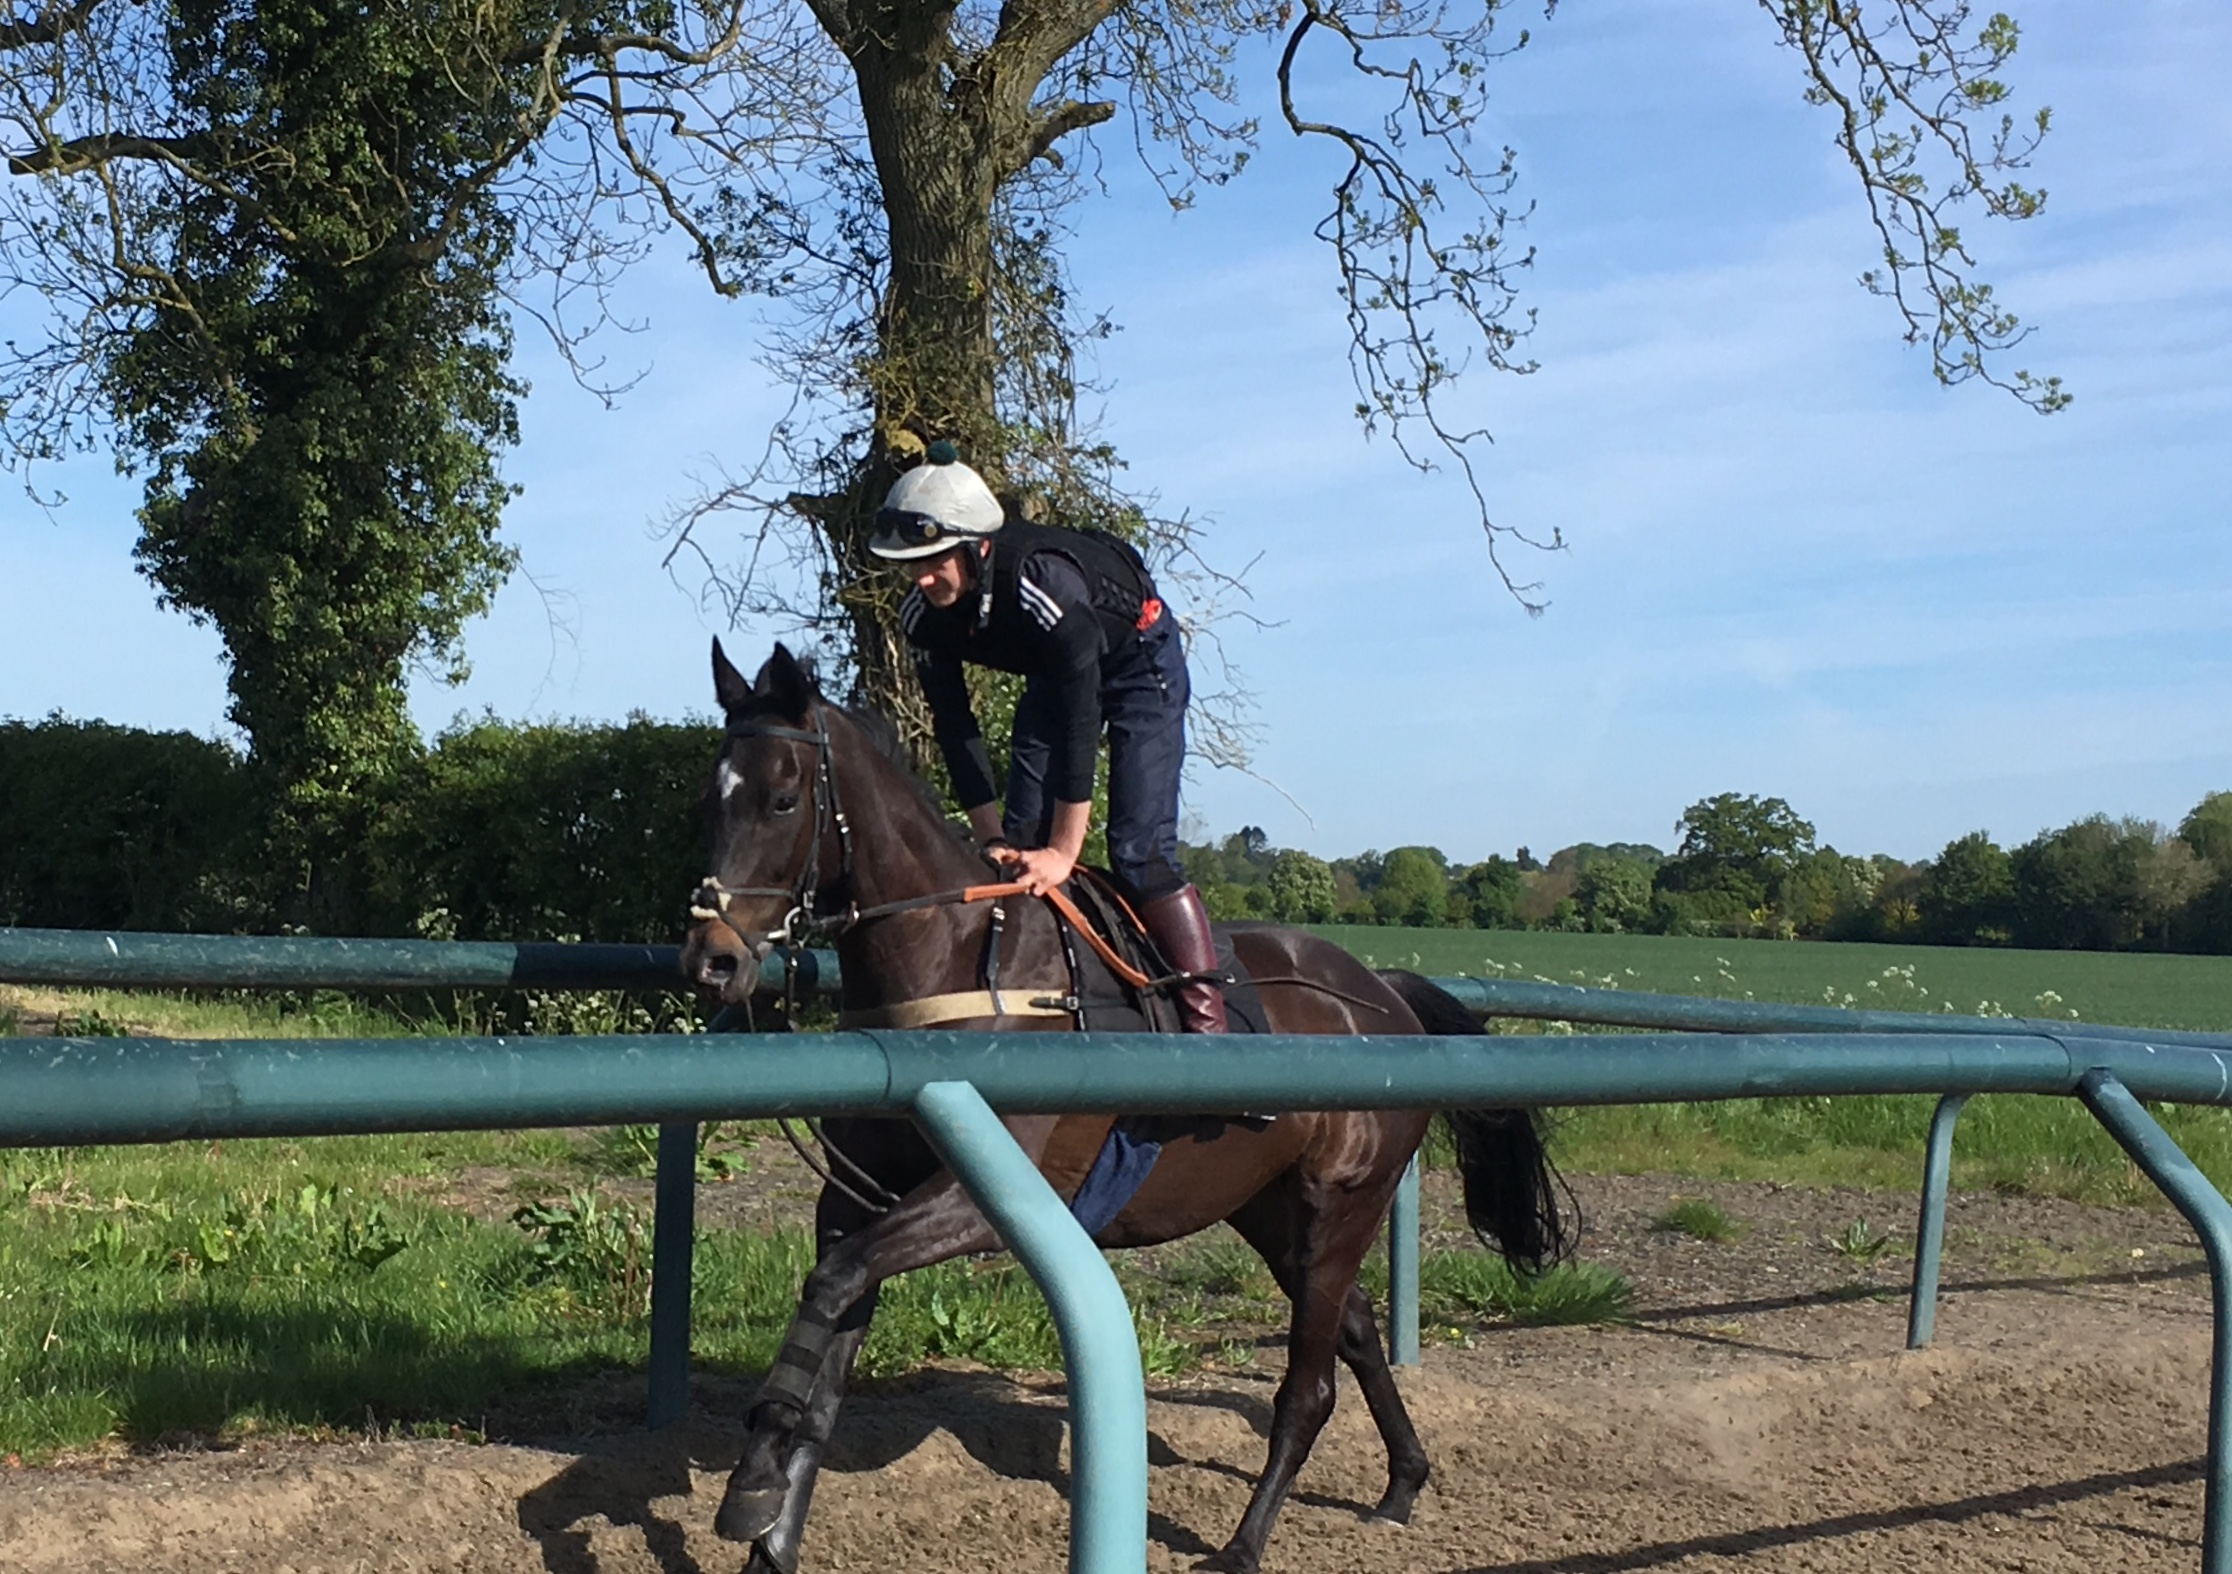 George & Wisecracker in preparation for their charity race